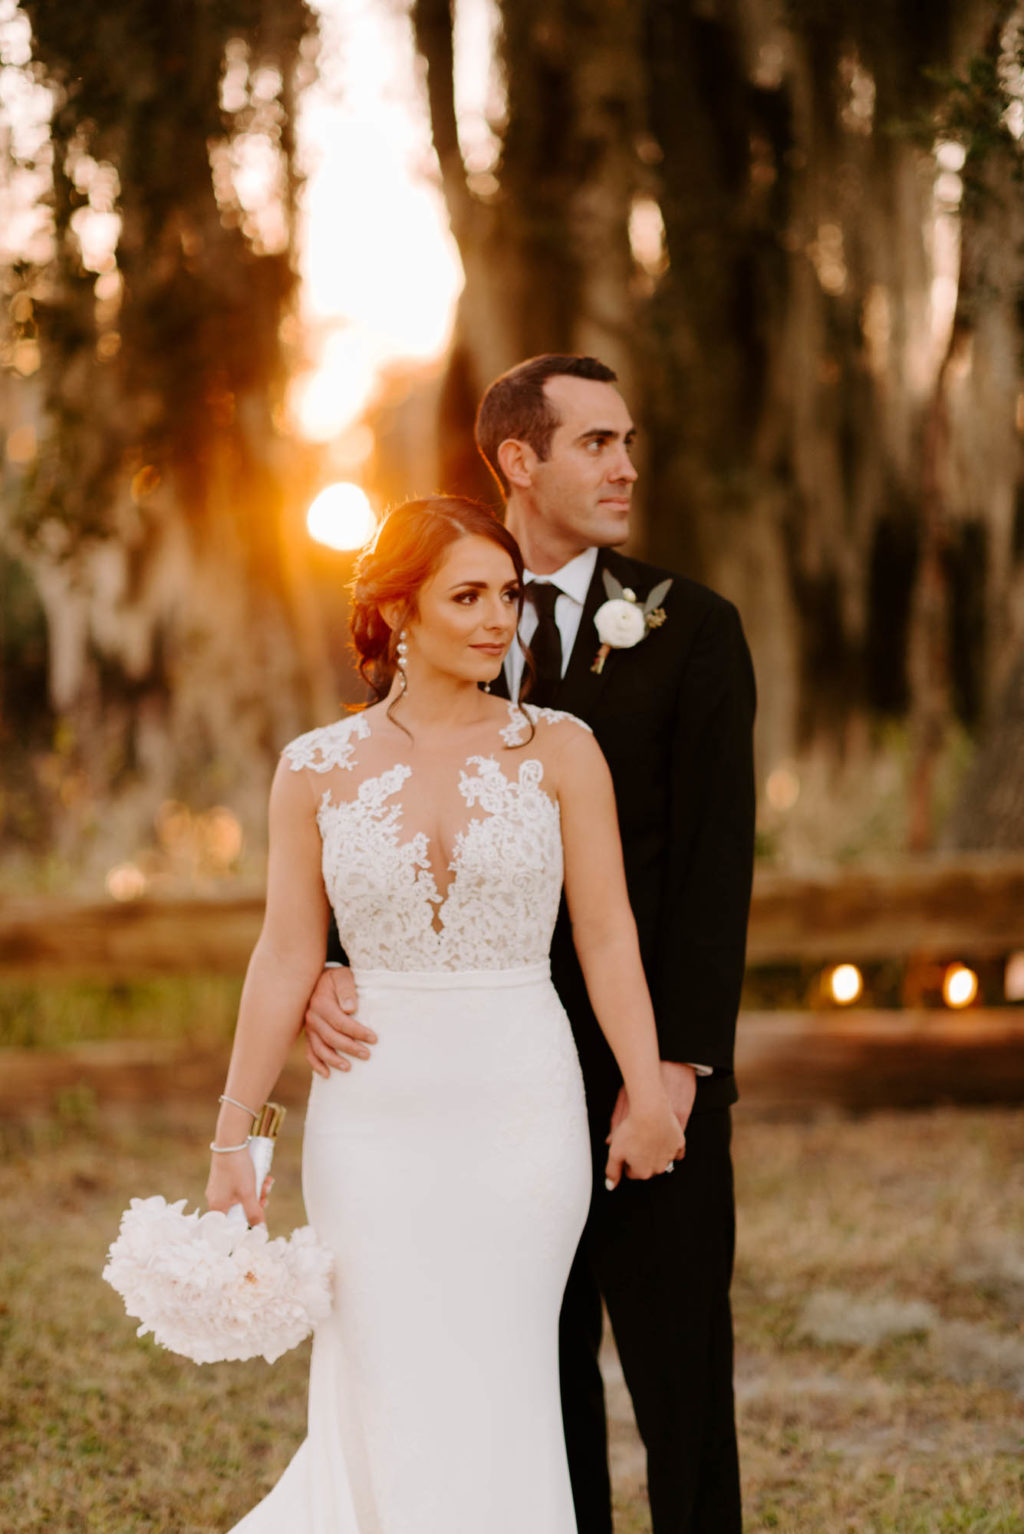 Outdoor Bride and Groom Sunset Portrait | Groom Wearing Classic Black Suit Tux | White Peony Bridal Bouquet | Sheath Illusion Lace Bridal Gown wedding Dress